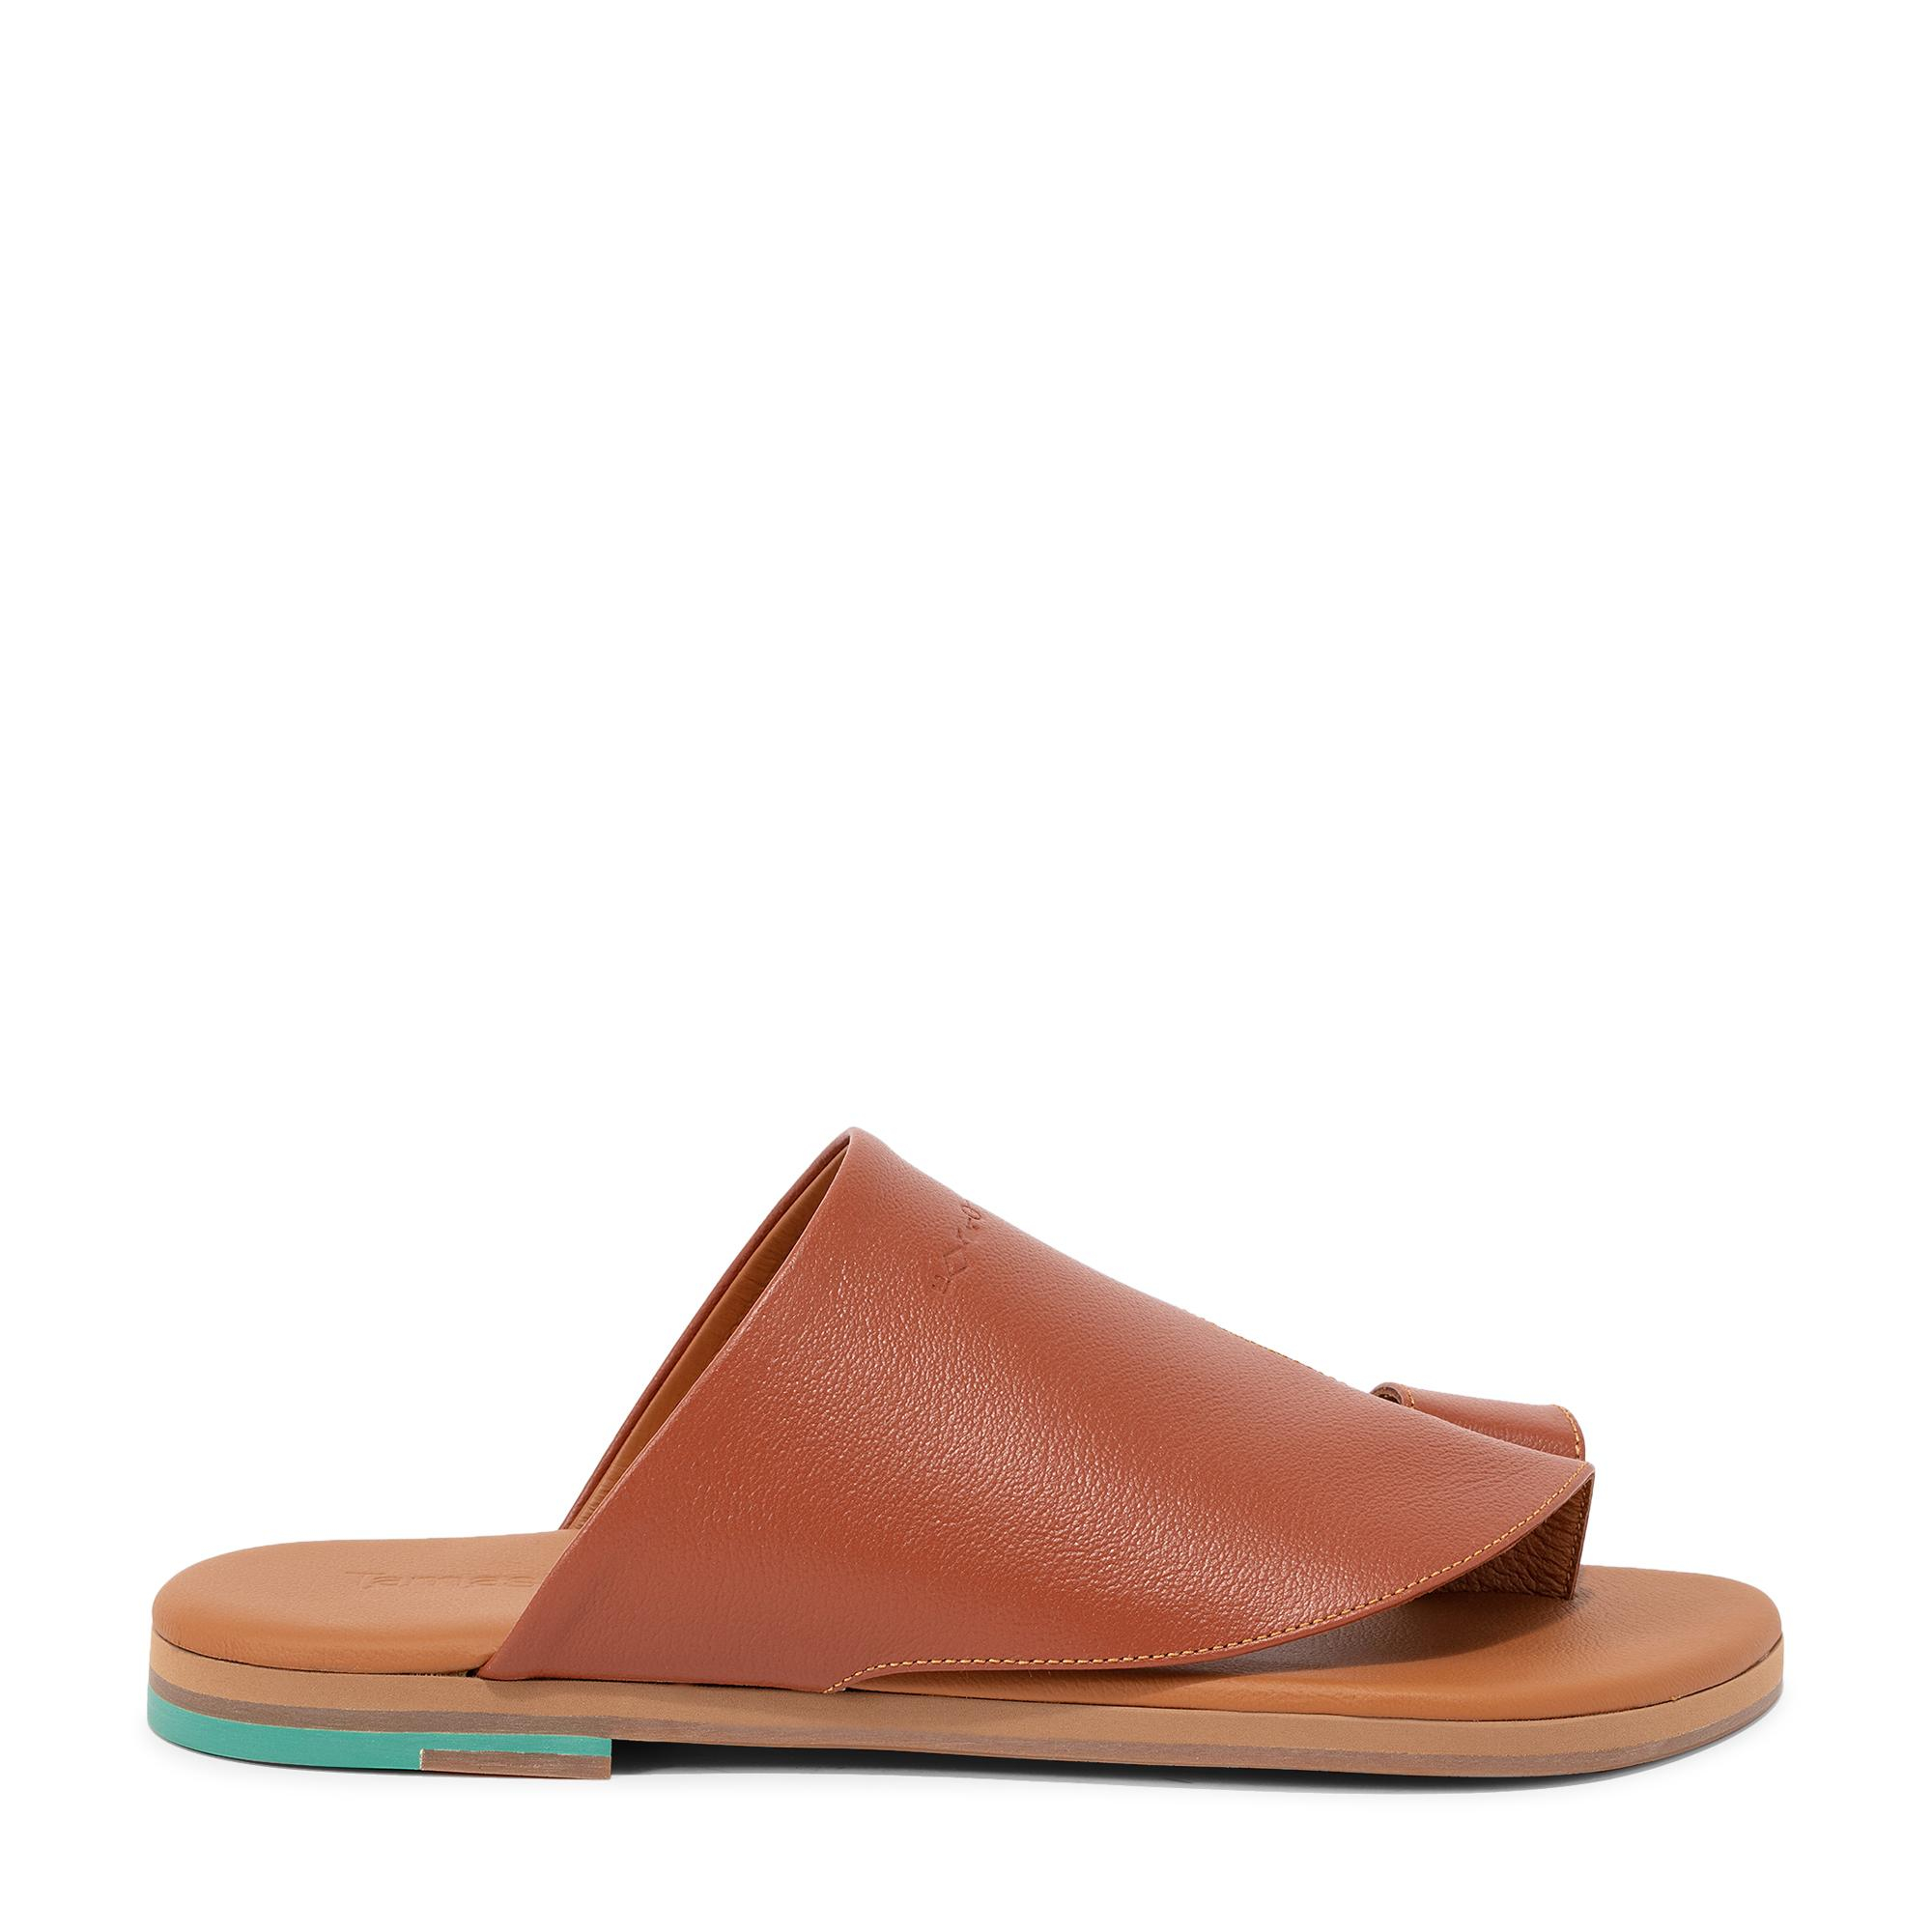 H'aa sandals